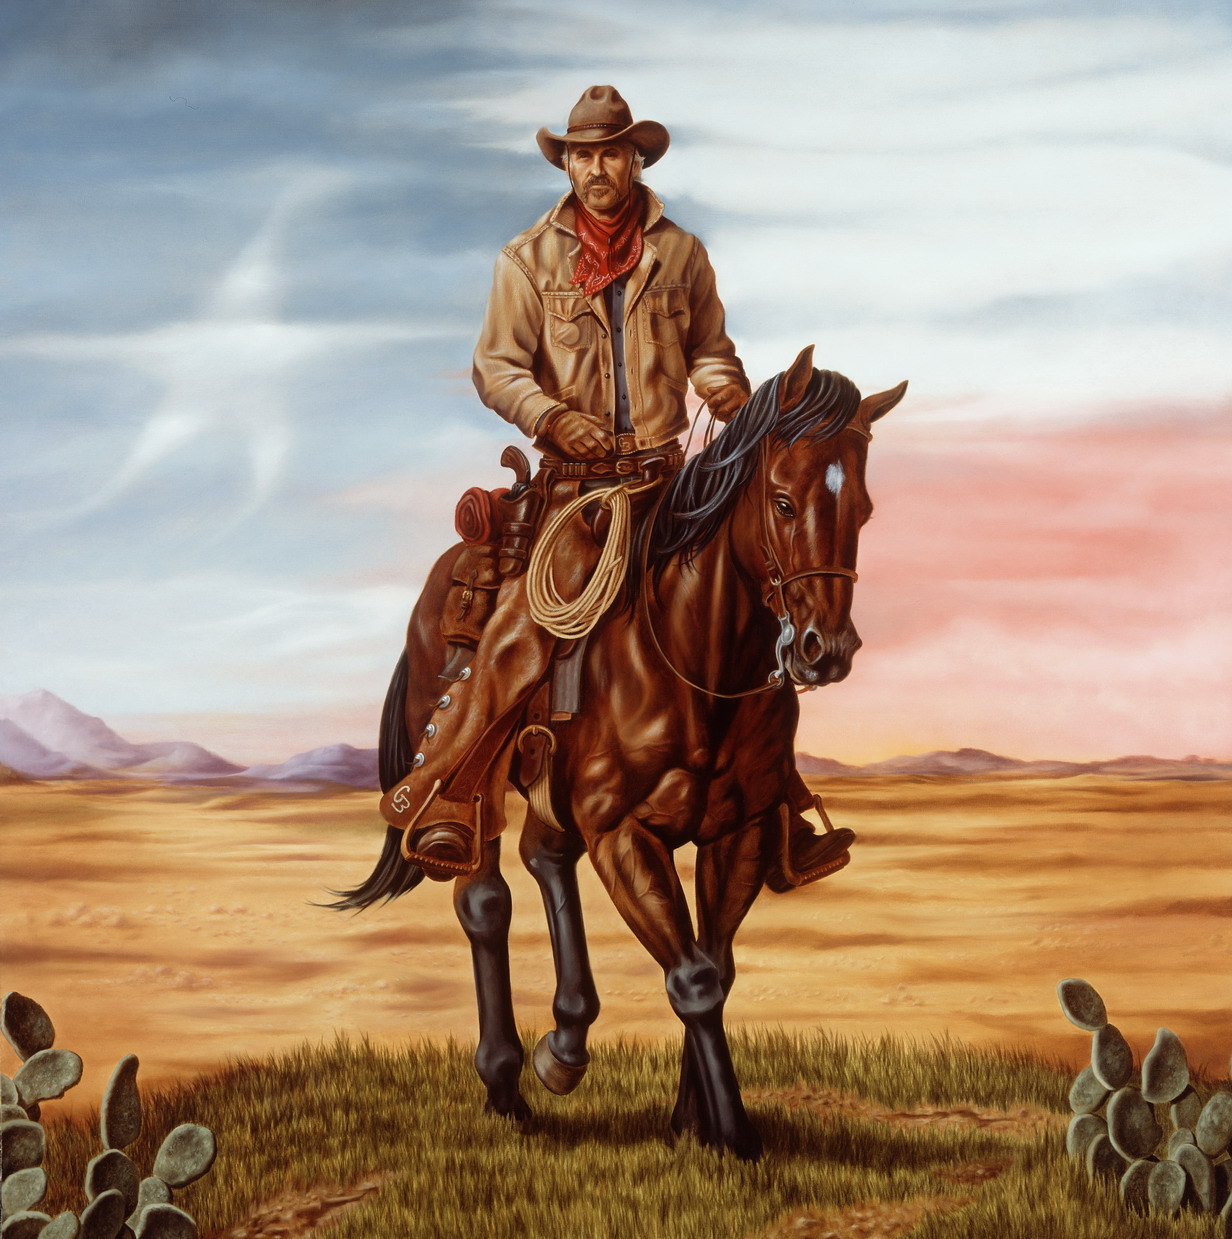 Western Cowboy Wallpaper - WallpaperSafari